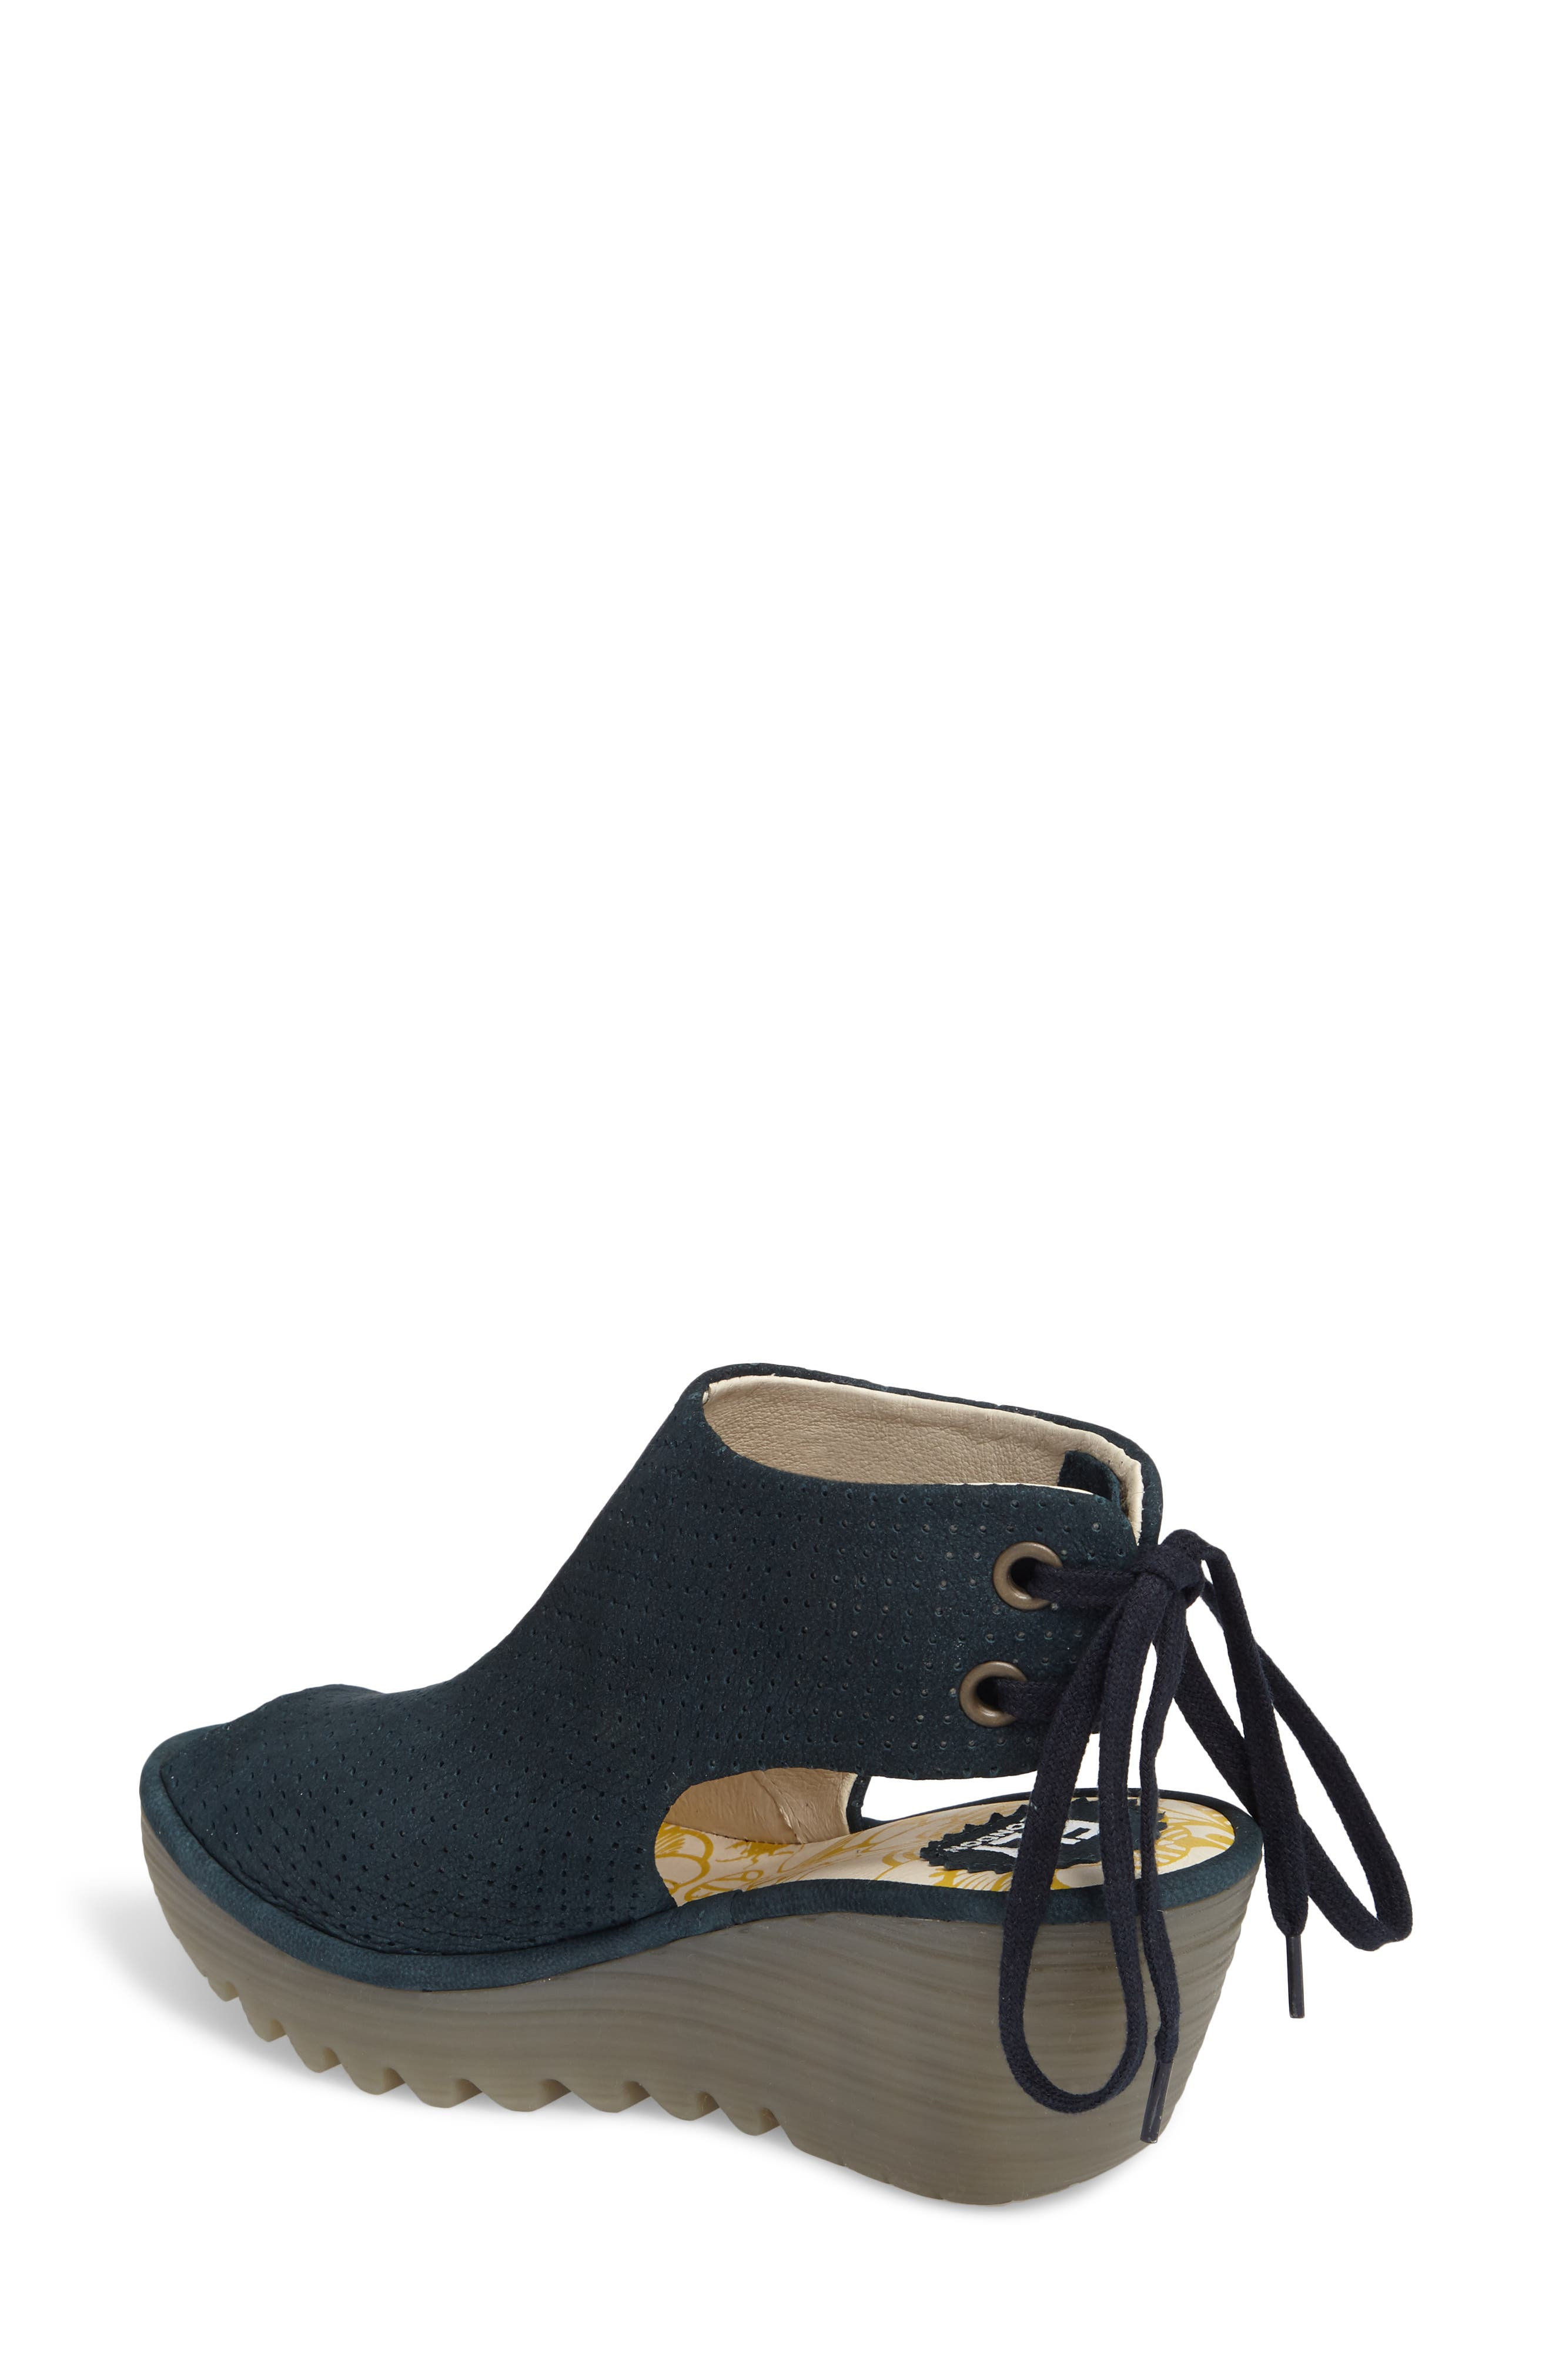 Ypul Wedge Sandal,                             Alternate thumbnail 2, color,                             Reef Cupido Leather